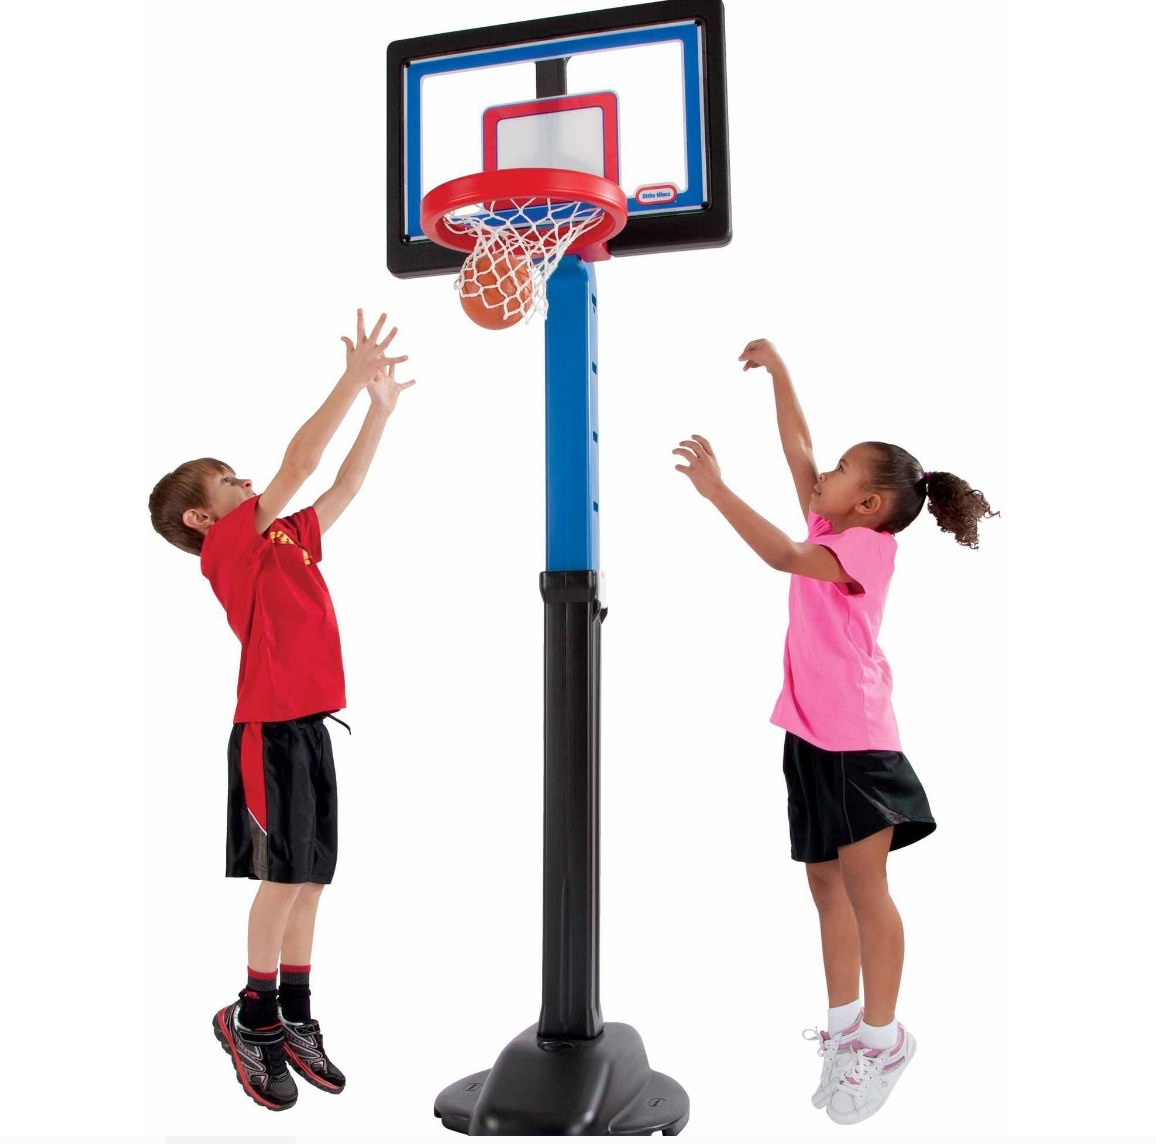 The basketball set being used by a boy and girl